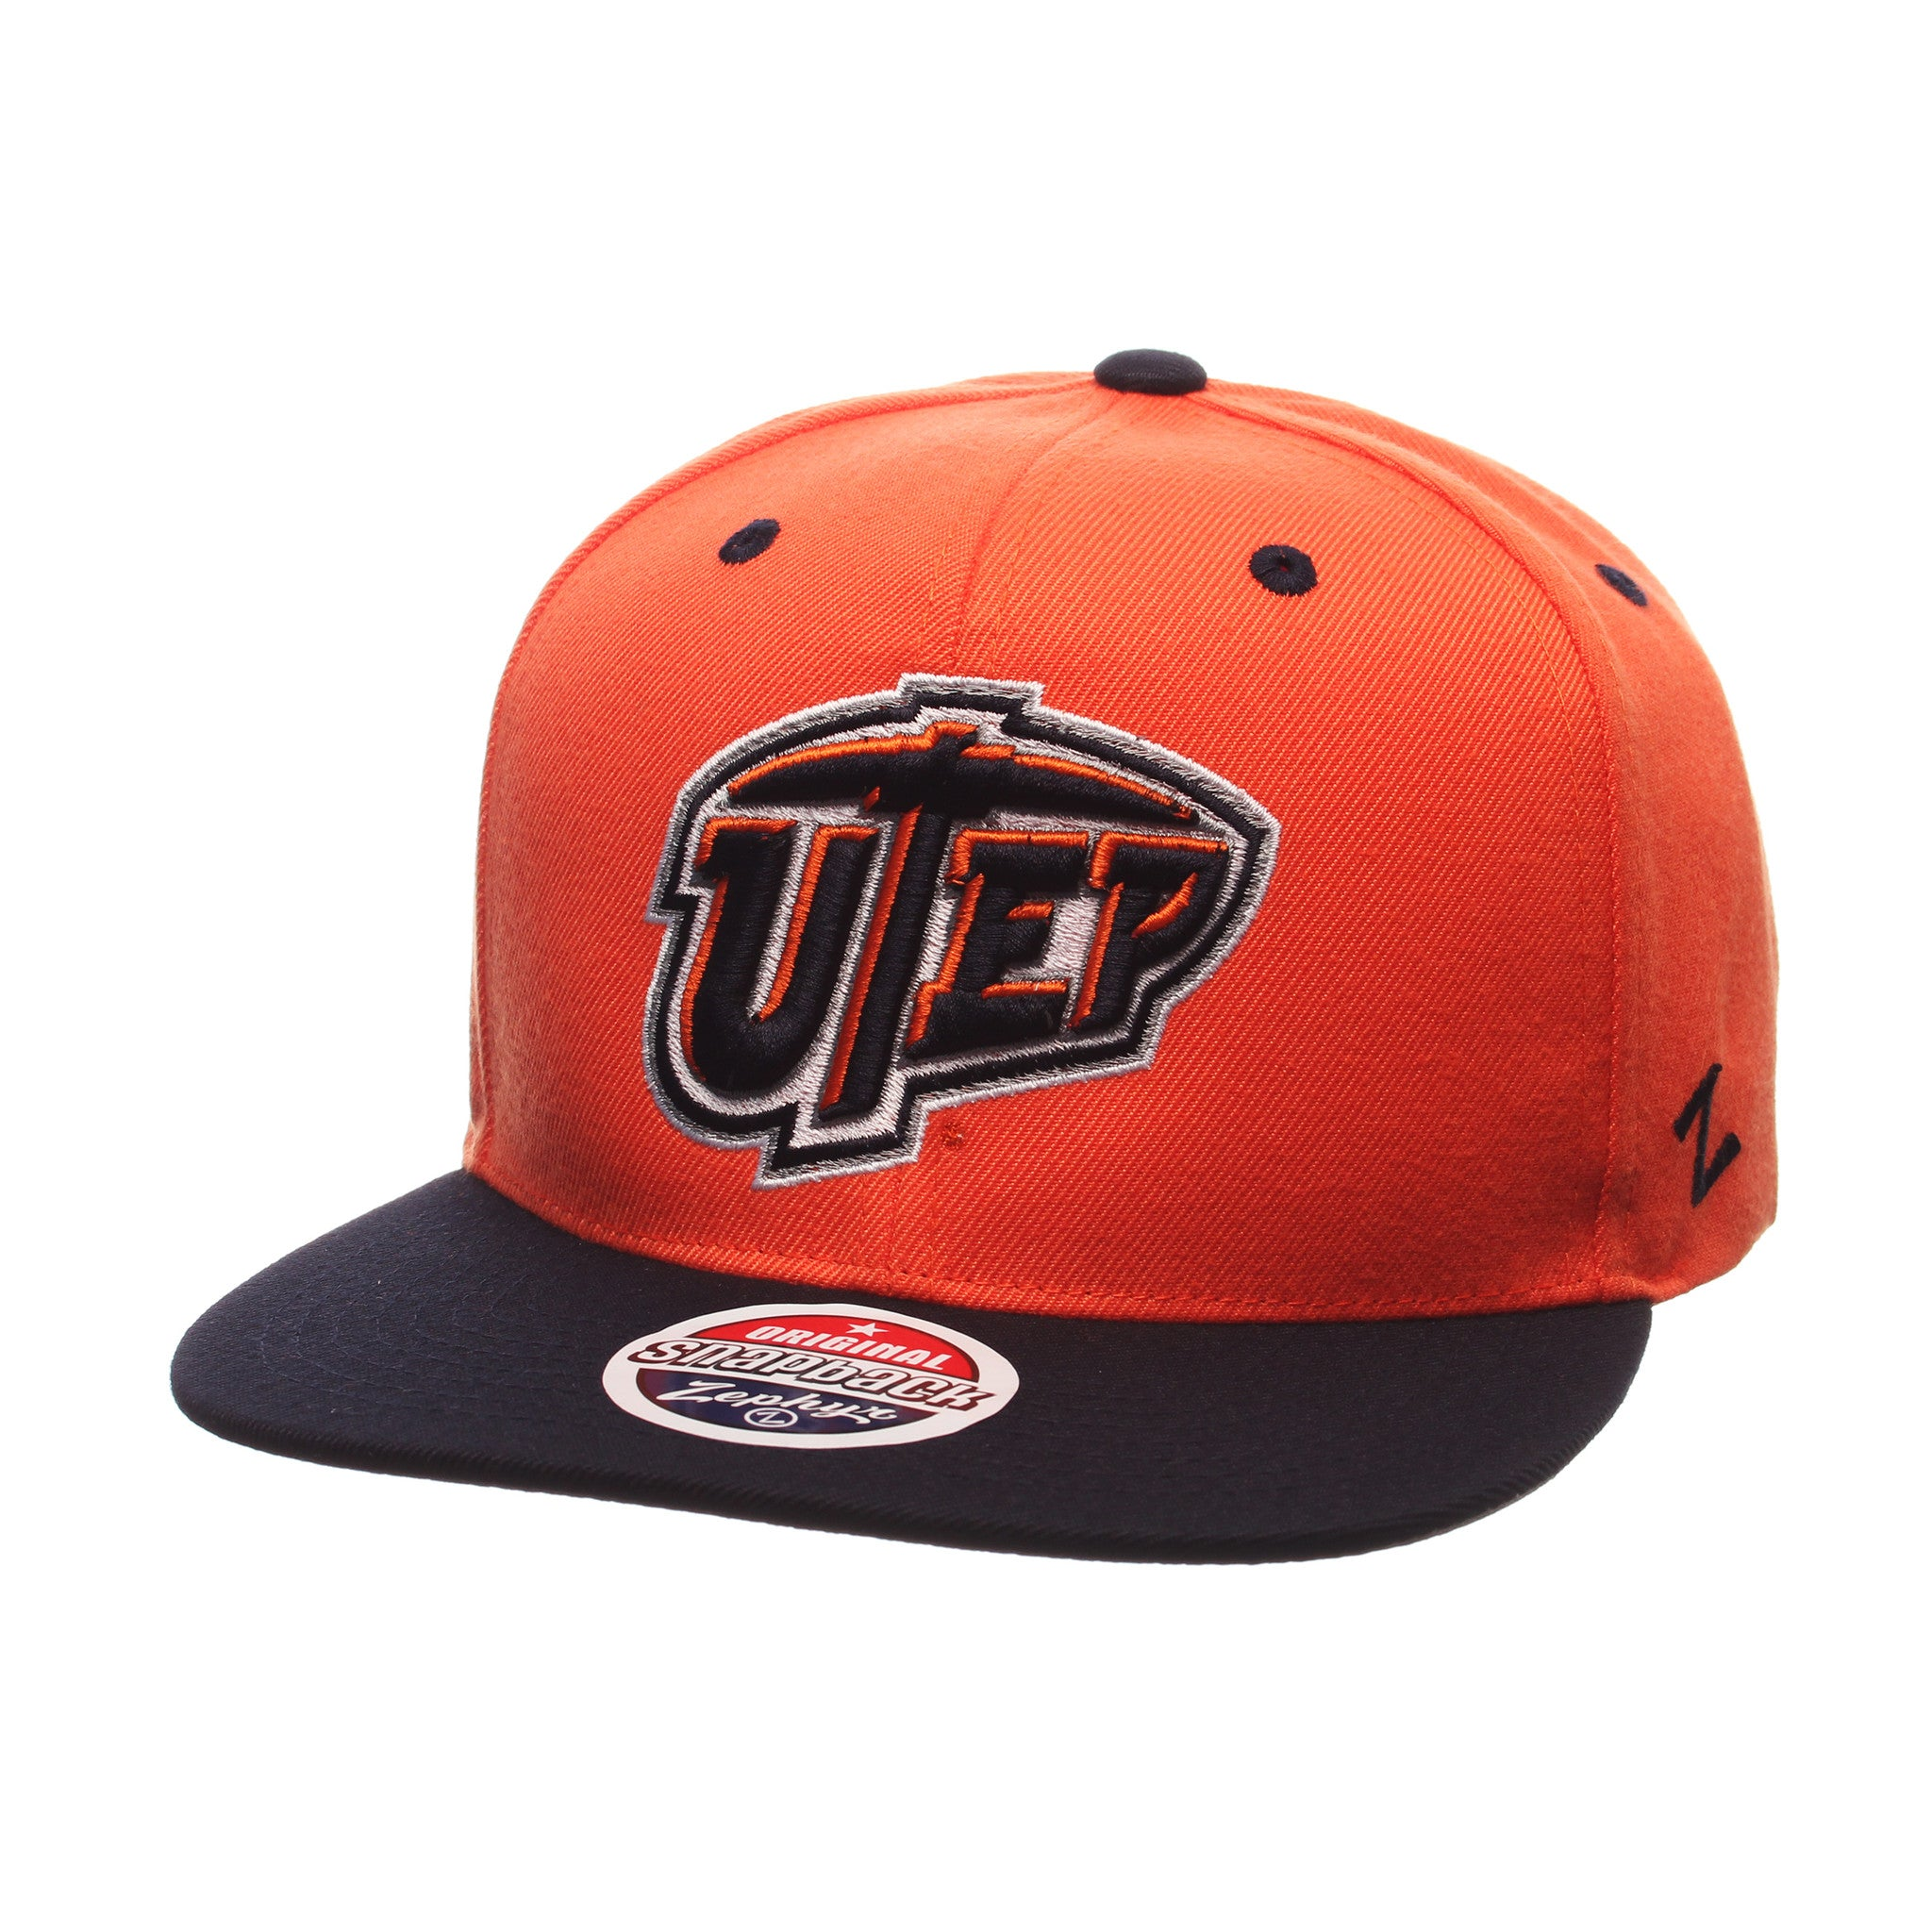 Texas (El Paso) Z11 32/5 (High) (UTEP) Orange Zwool Adjustable hats by Zephyr